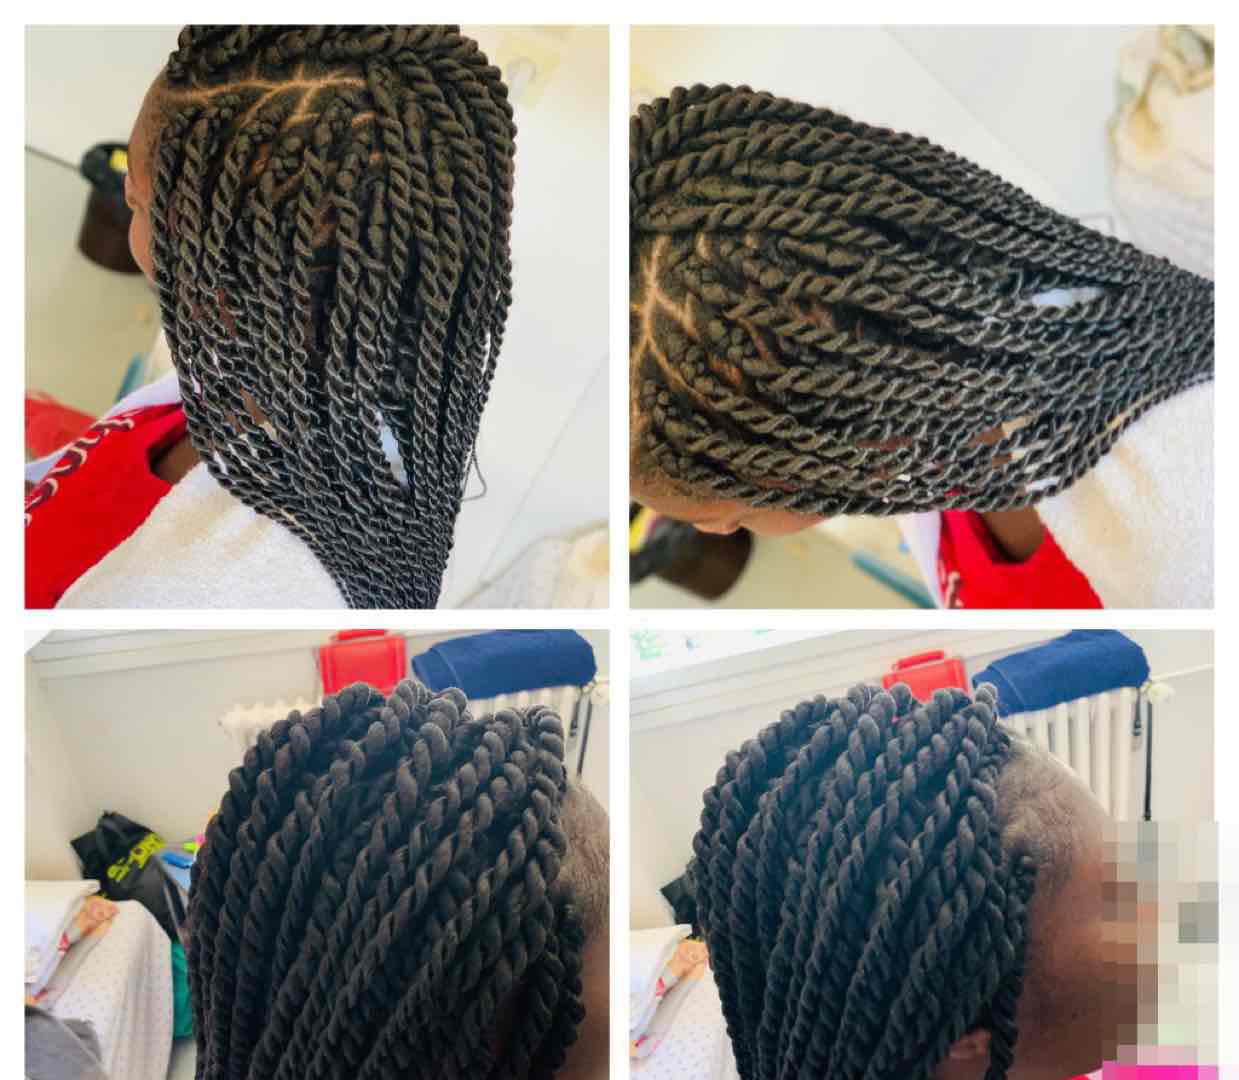 salon de coiffure afro tresse tresses box braids crochet braids vanilles tissages paris 75 77 78 91 92 93 94 95 DEVHZGTF